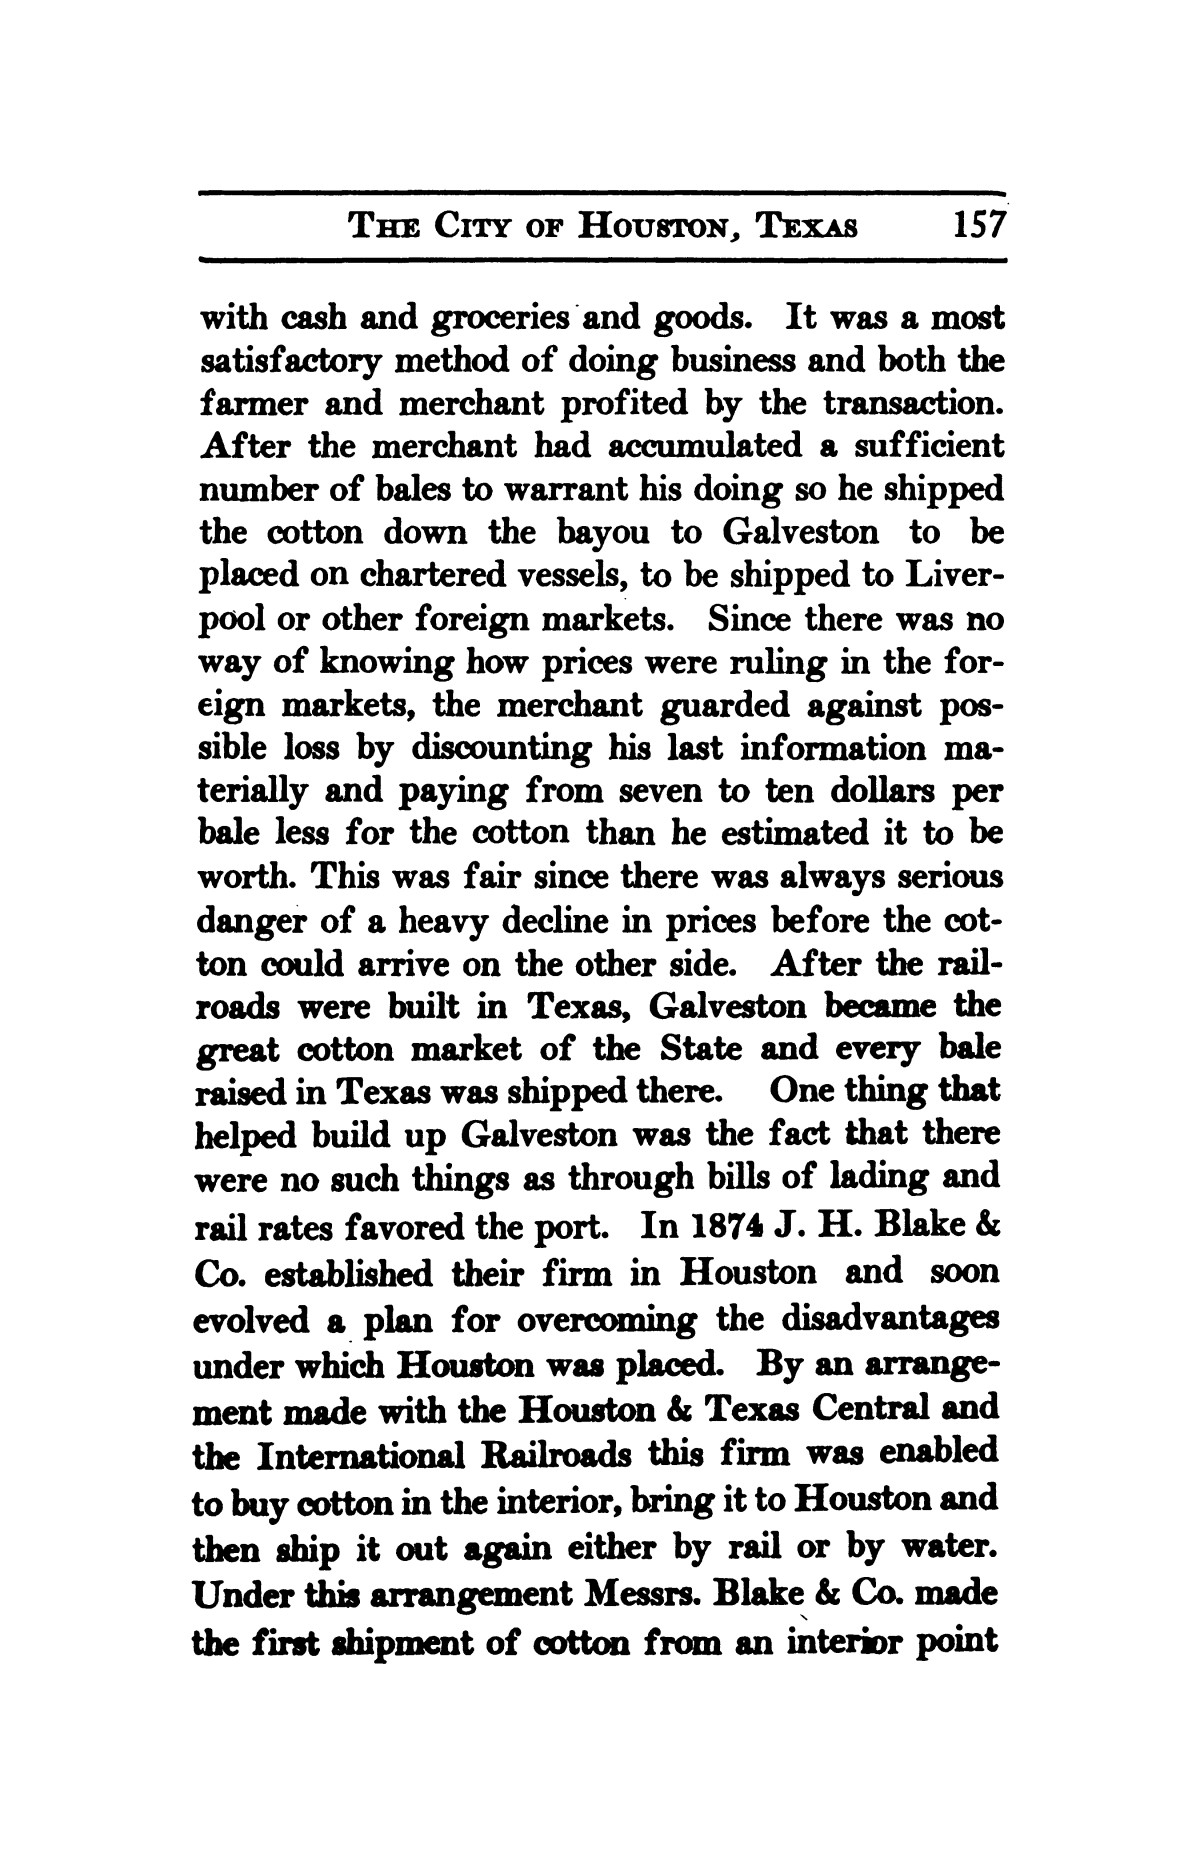 A thumb-nail history of the city of Houston, Texas, from its founding in 1836 to the year 1912                                                                                                      157